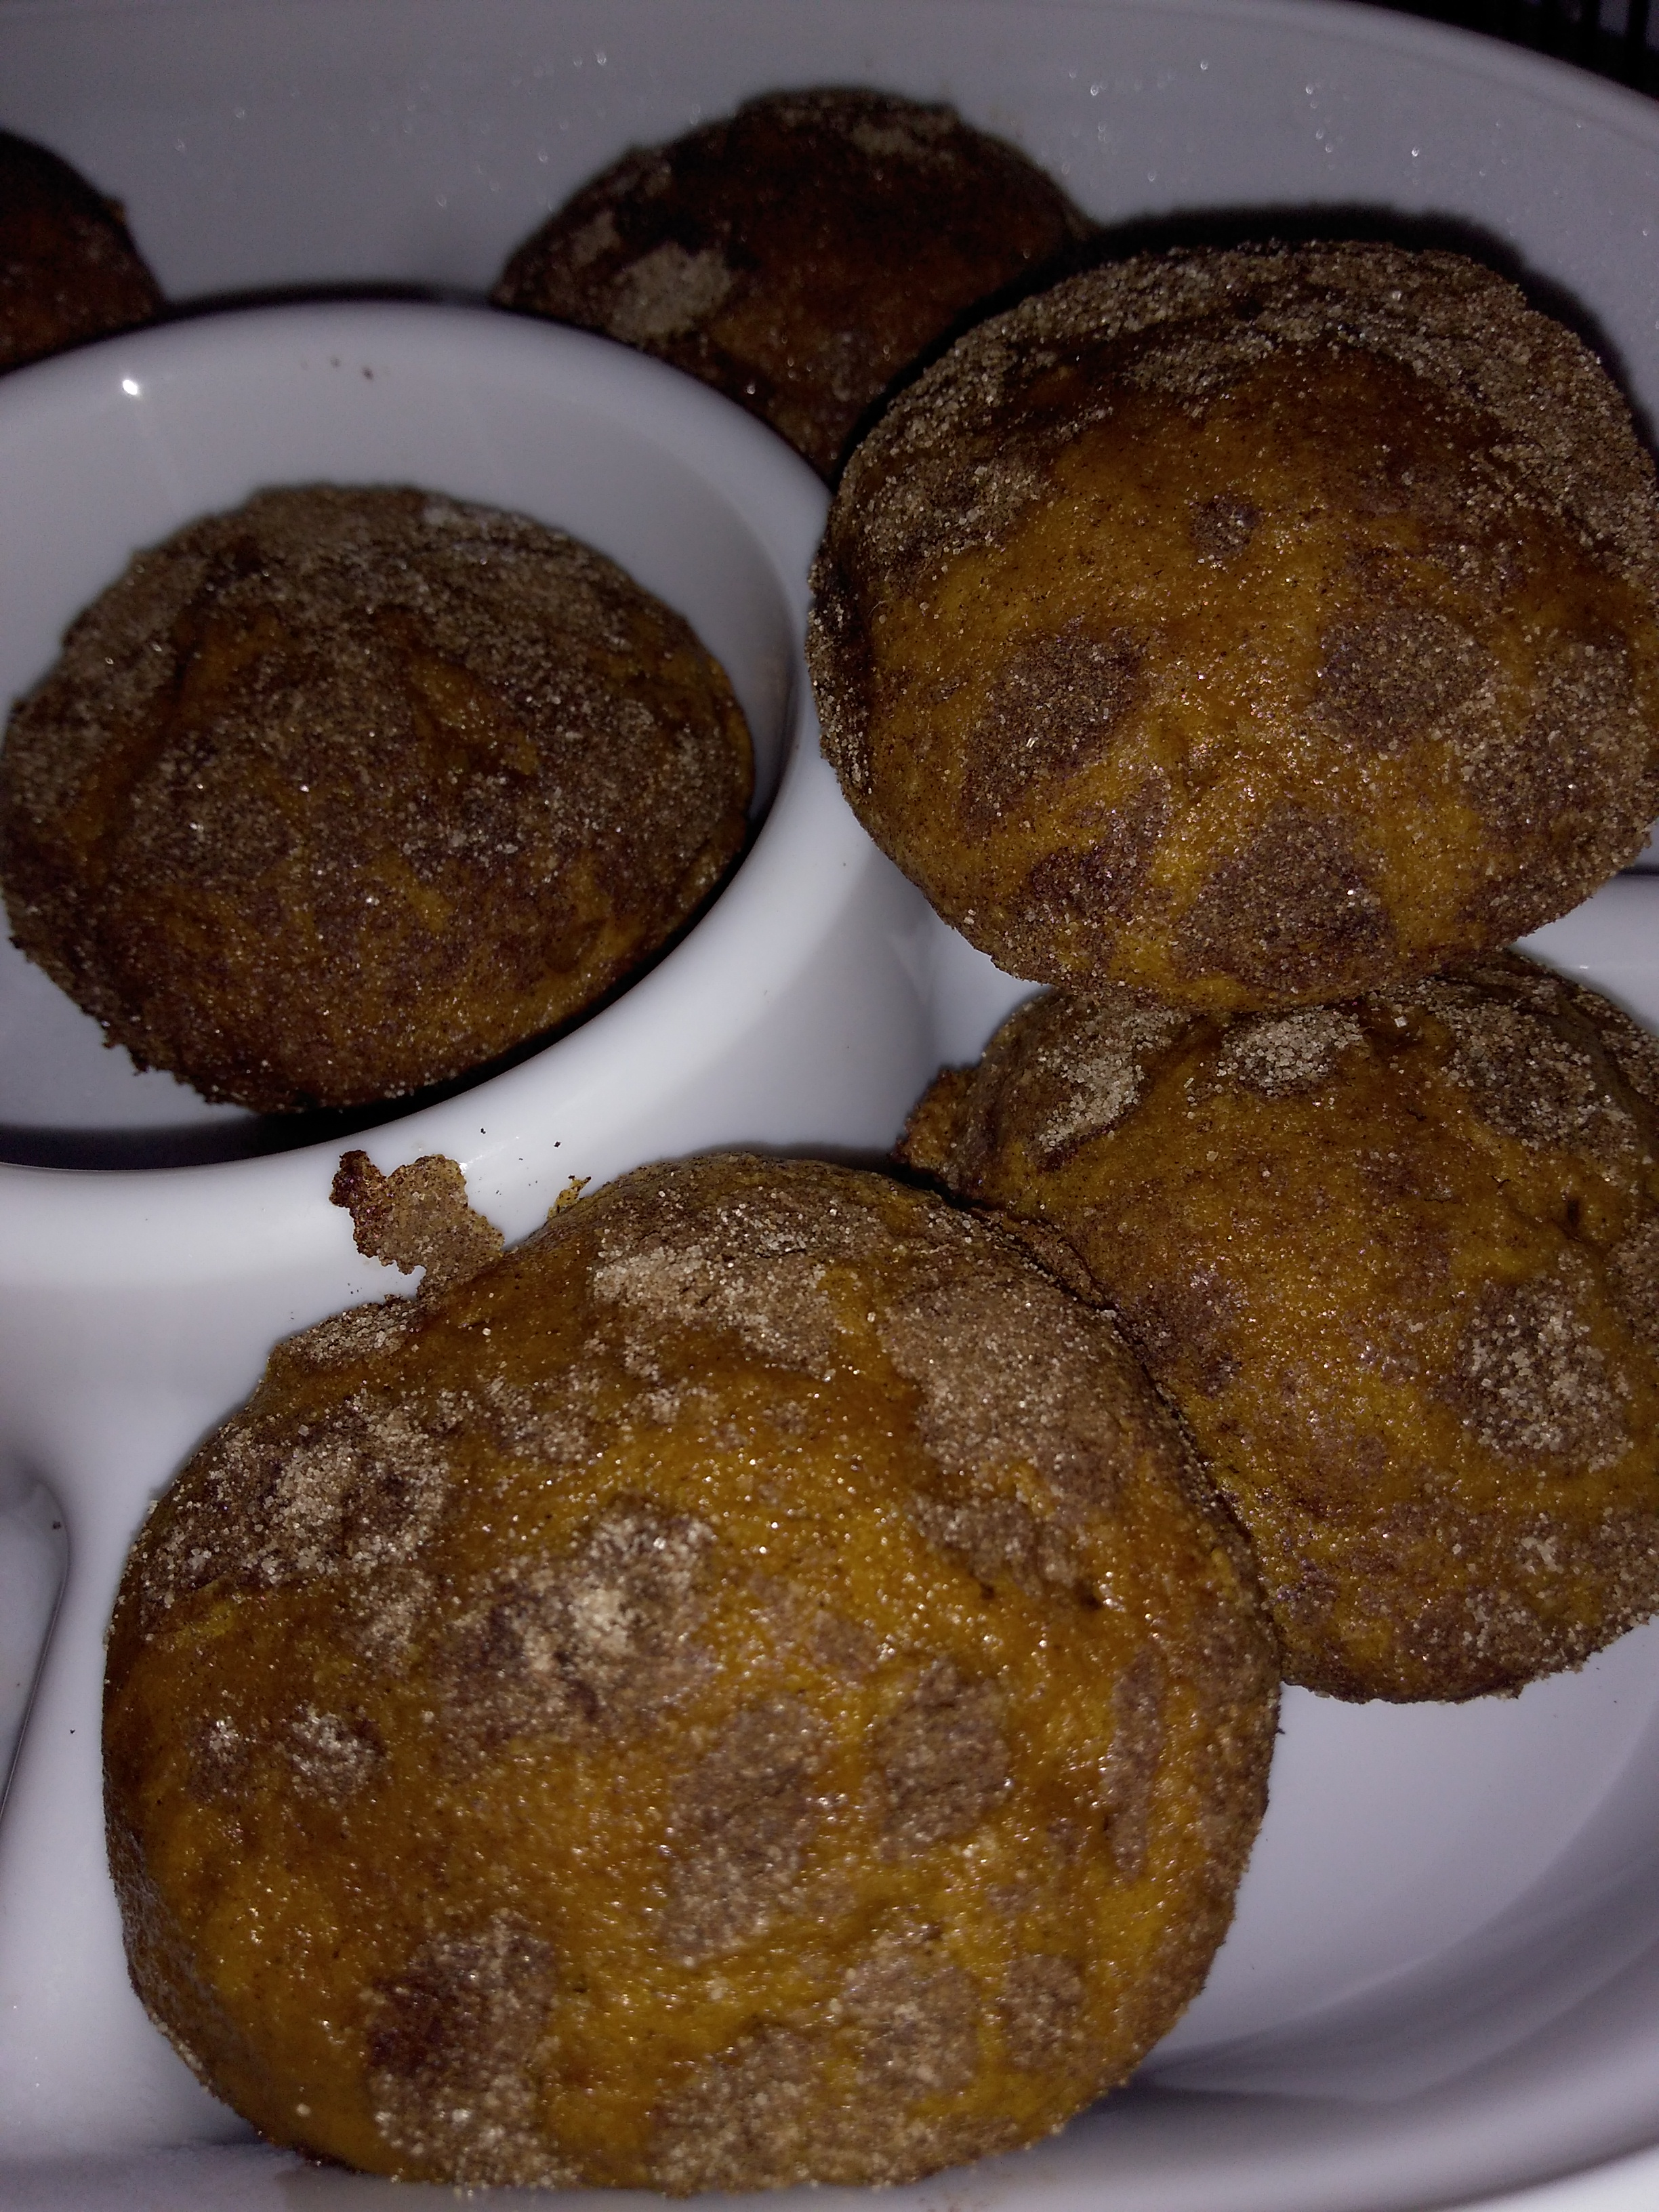 Pumpkin Muffins with Cinnamon Streusel Topping